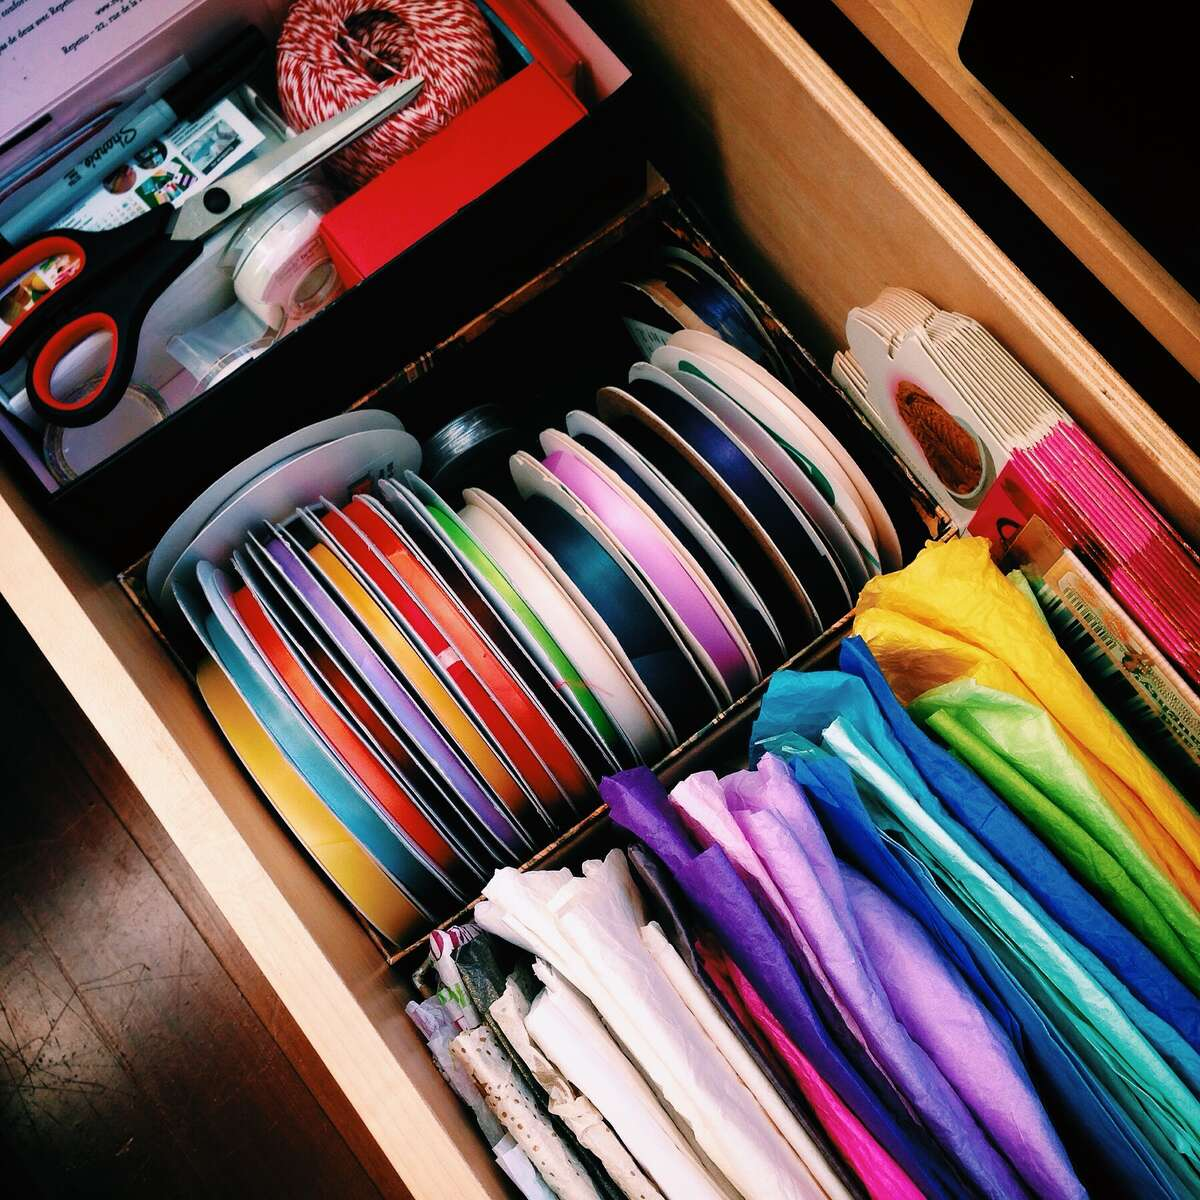 """Organizational progress is afoot! Kondo says, """"Store all items of the same type in the same place and don't scatter storage space."""""""